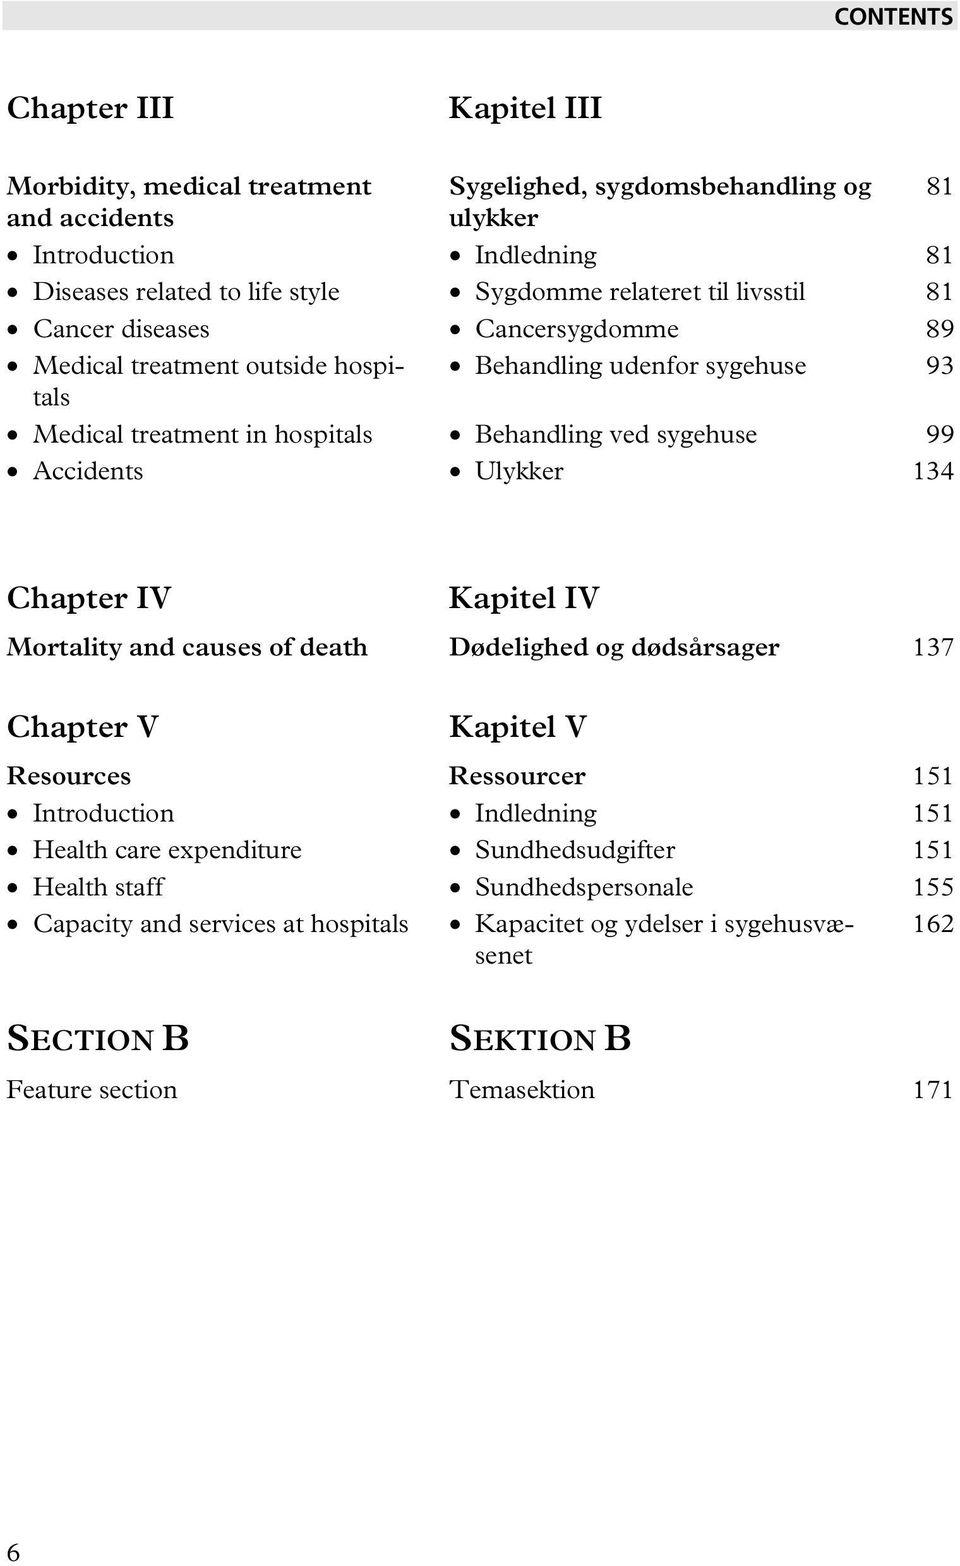 Accidents Ulykker 134 81 Chapter IV Kapitel IV Mortality and causes of death Dødelighed og dødsårsager 137 Chapter V Kapitel V Resources Ressourcer 151 Introduction Indledning 151 Health